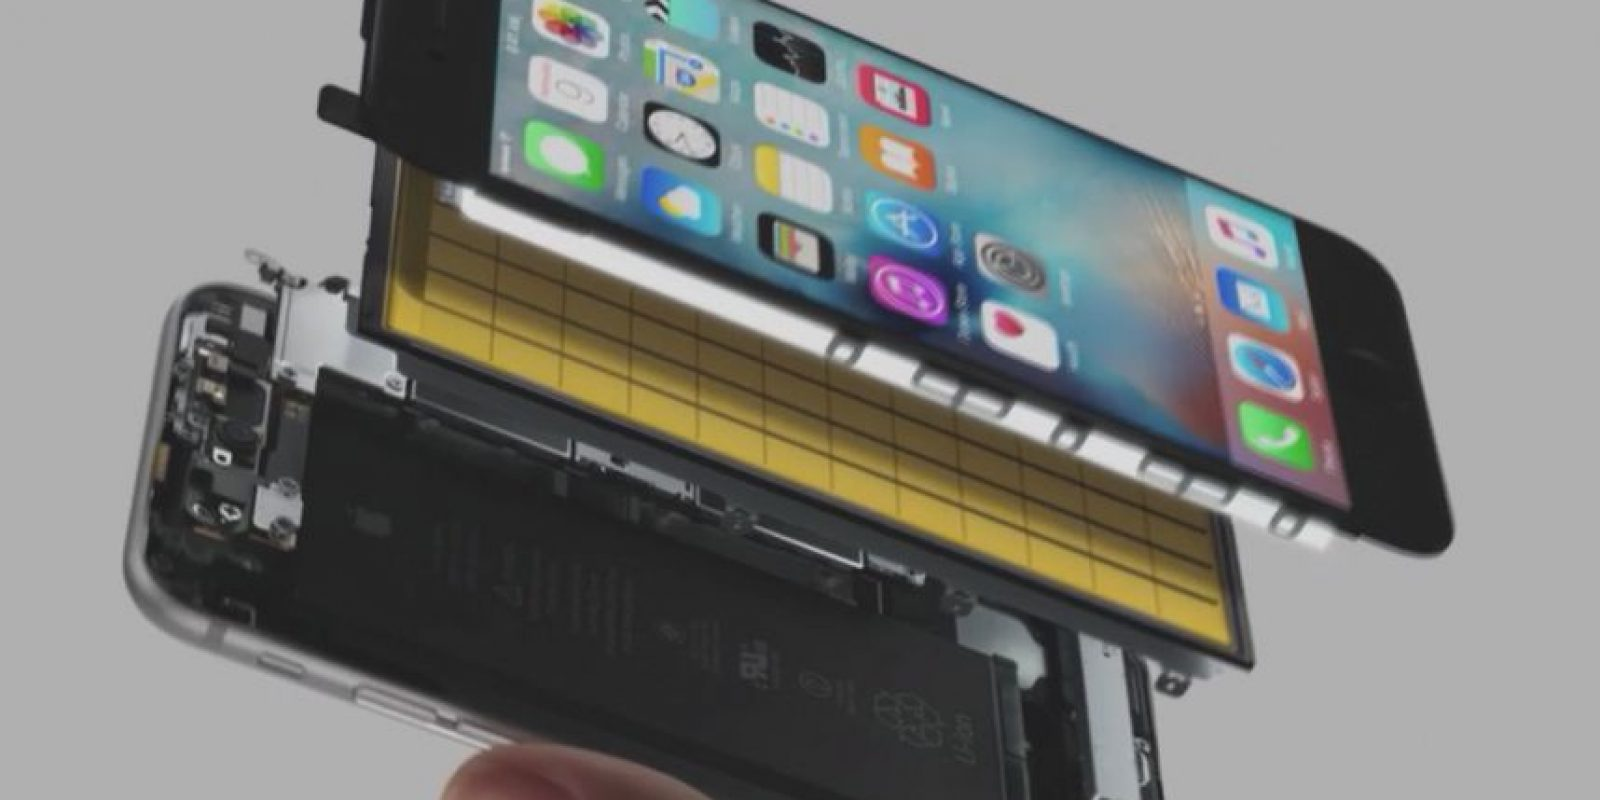 Tapic Engine, sensores capacitivos y 3D Touch Foto: Apple